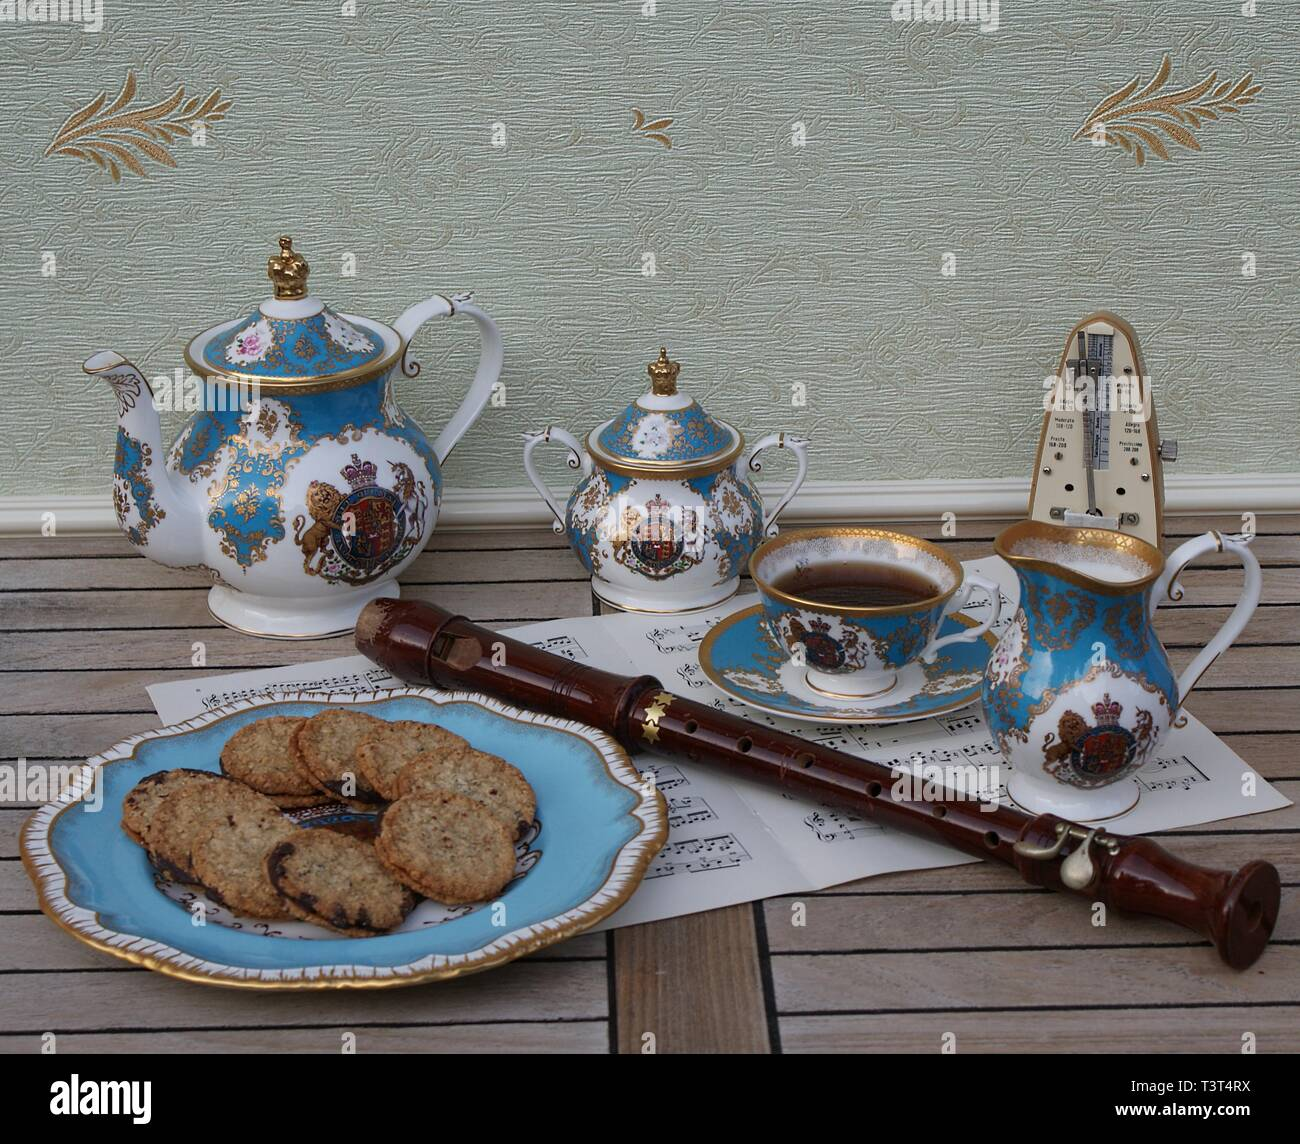 English teacup with saucer, teapot, sugar bowl, cream jug and a cake plate with cookies, metronome for music and a block flute on a sheet of music - Stock Image